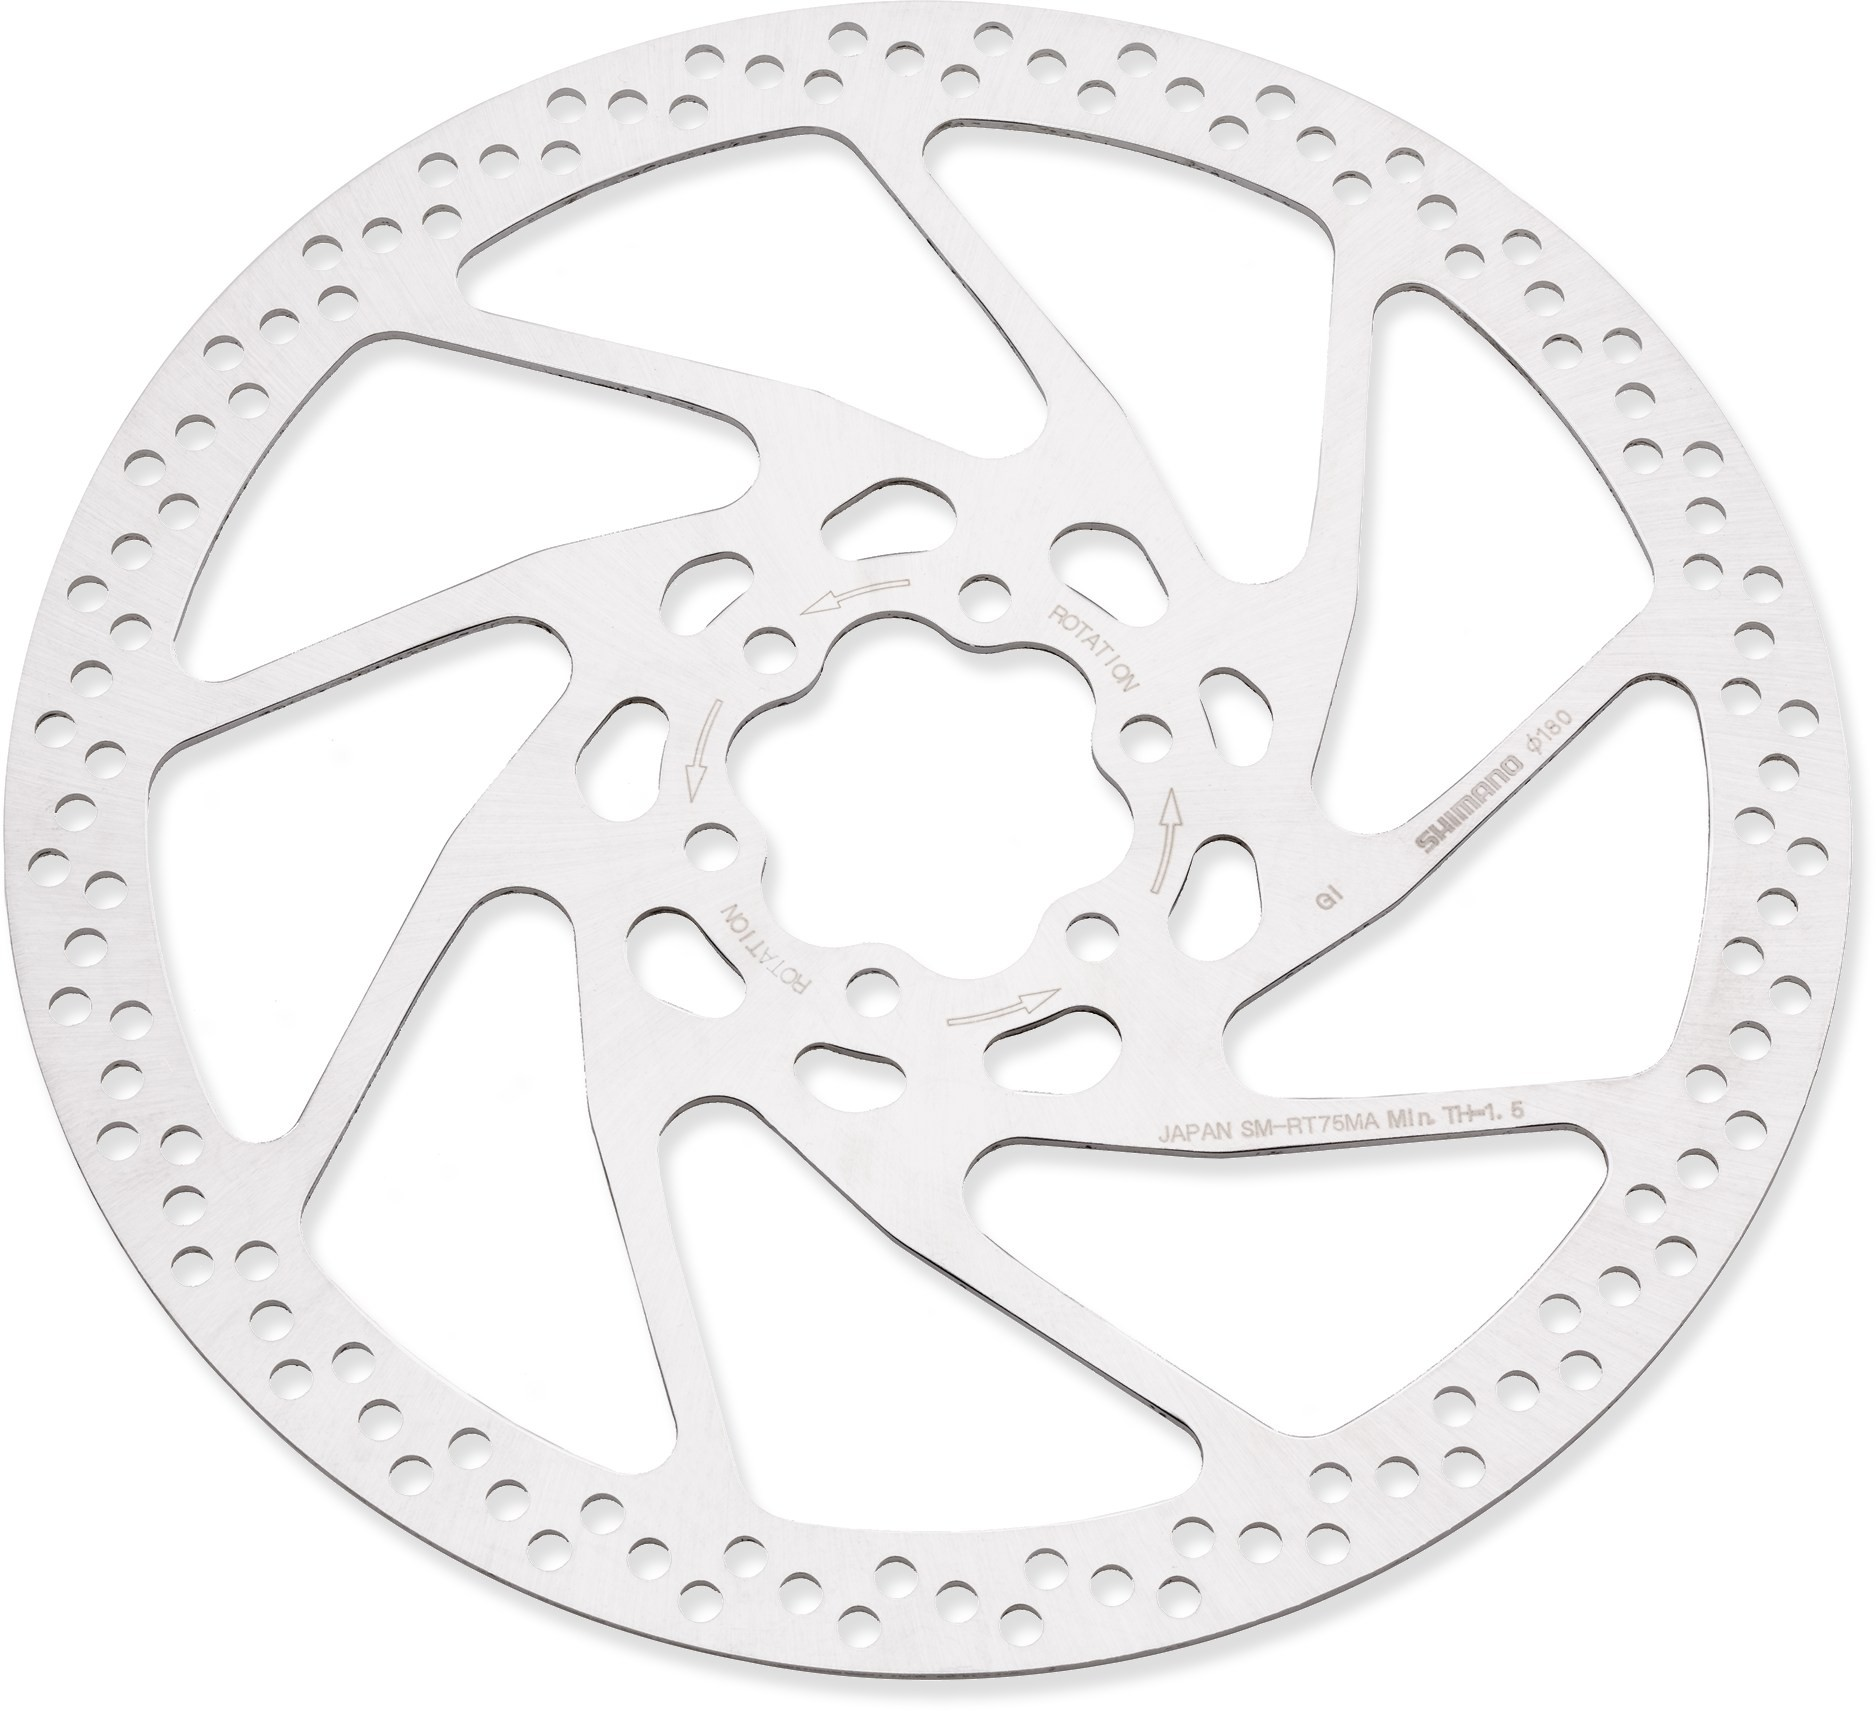 Shimano SM-RT75 Deore XT Disc Brake Rotor 160mm 6 Bolt Fitting